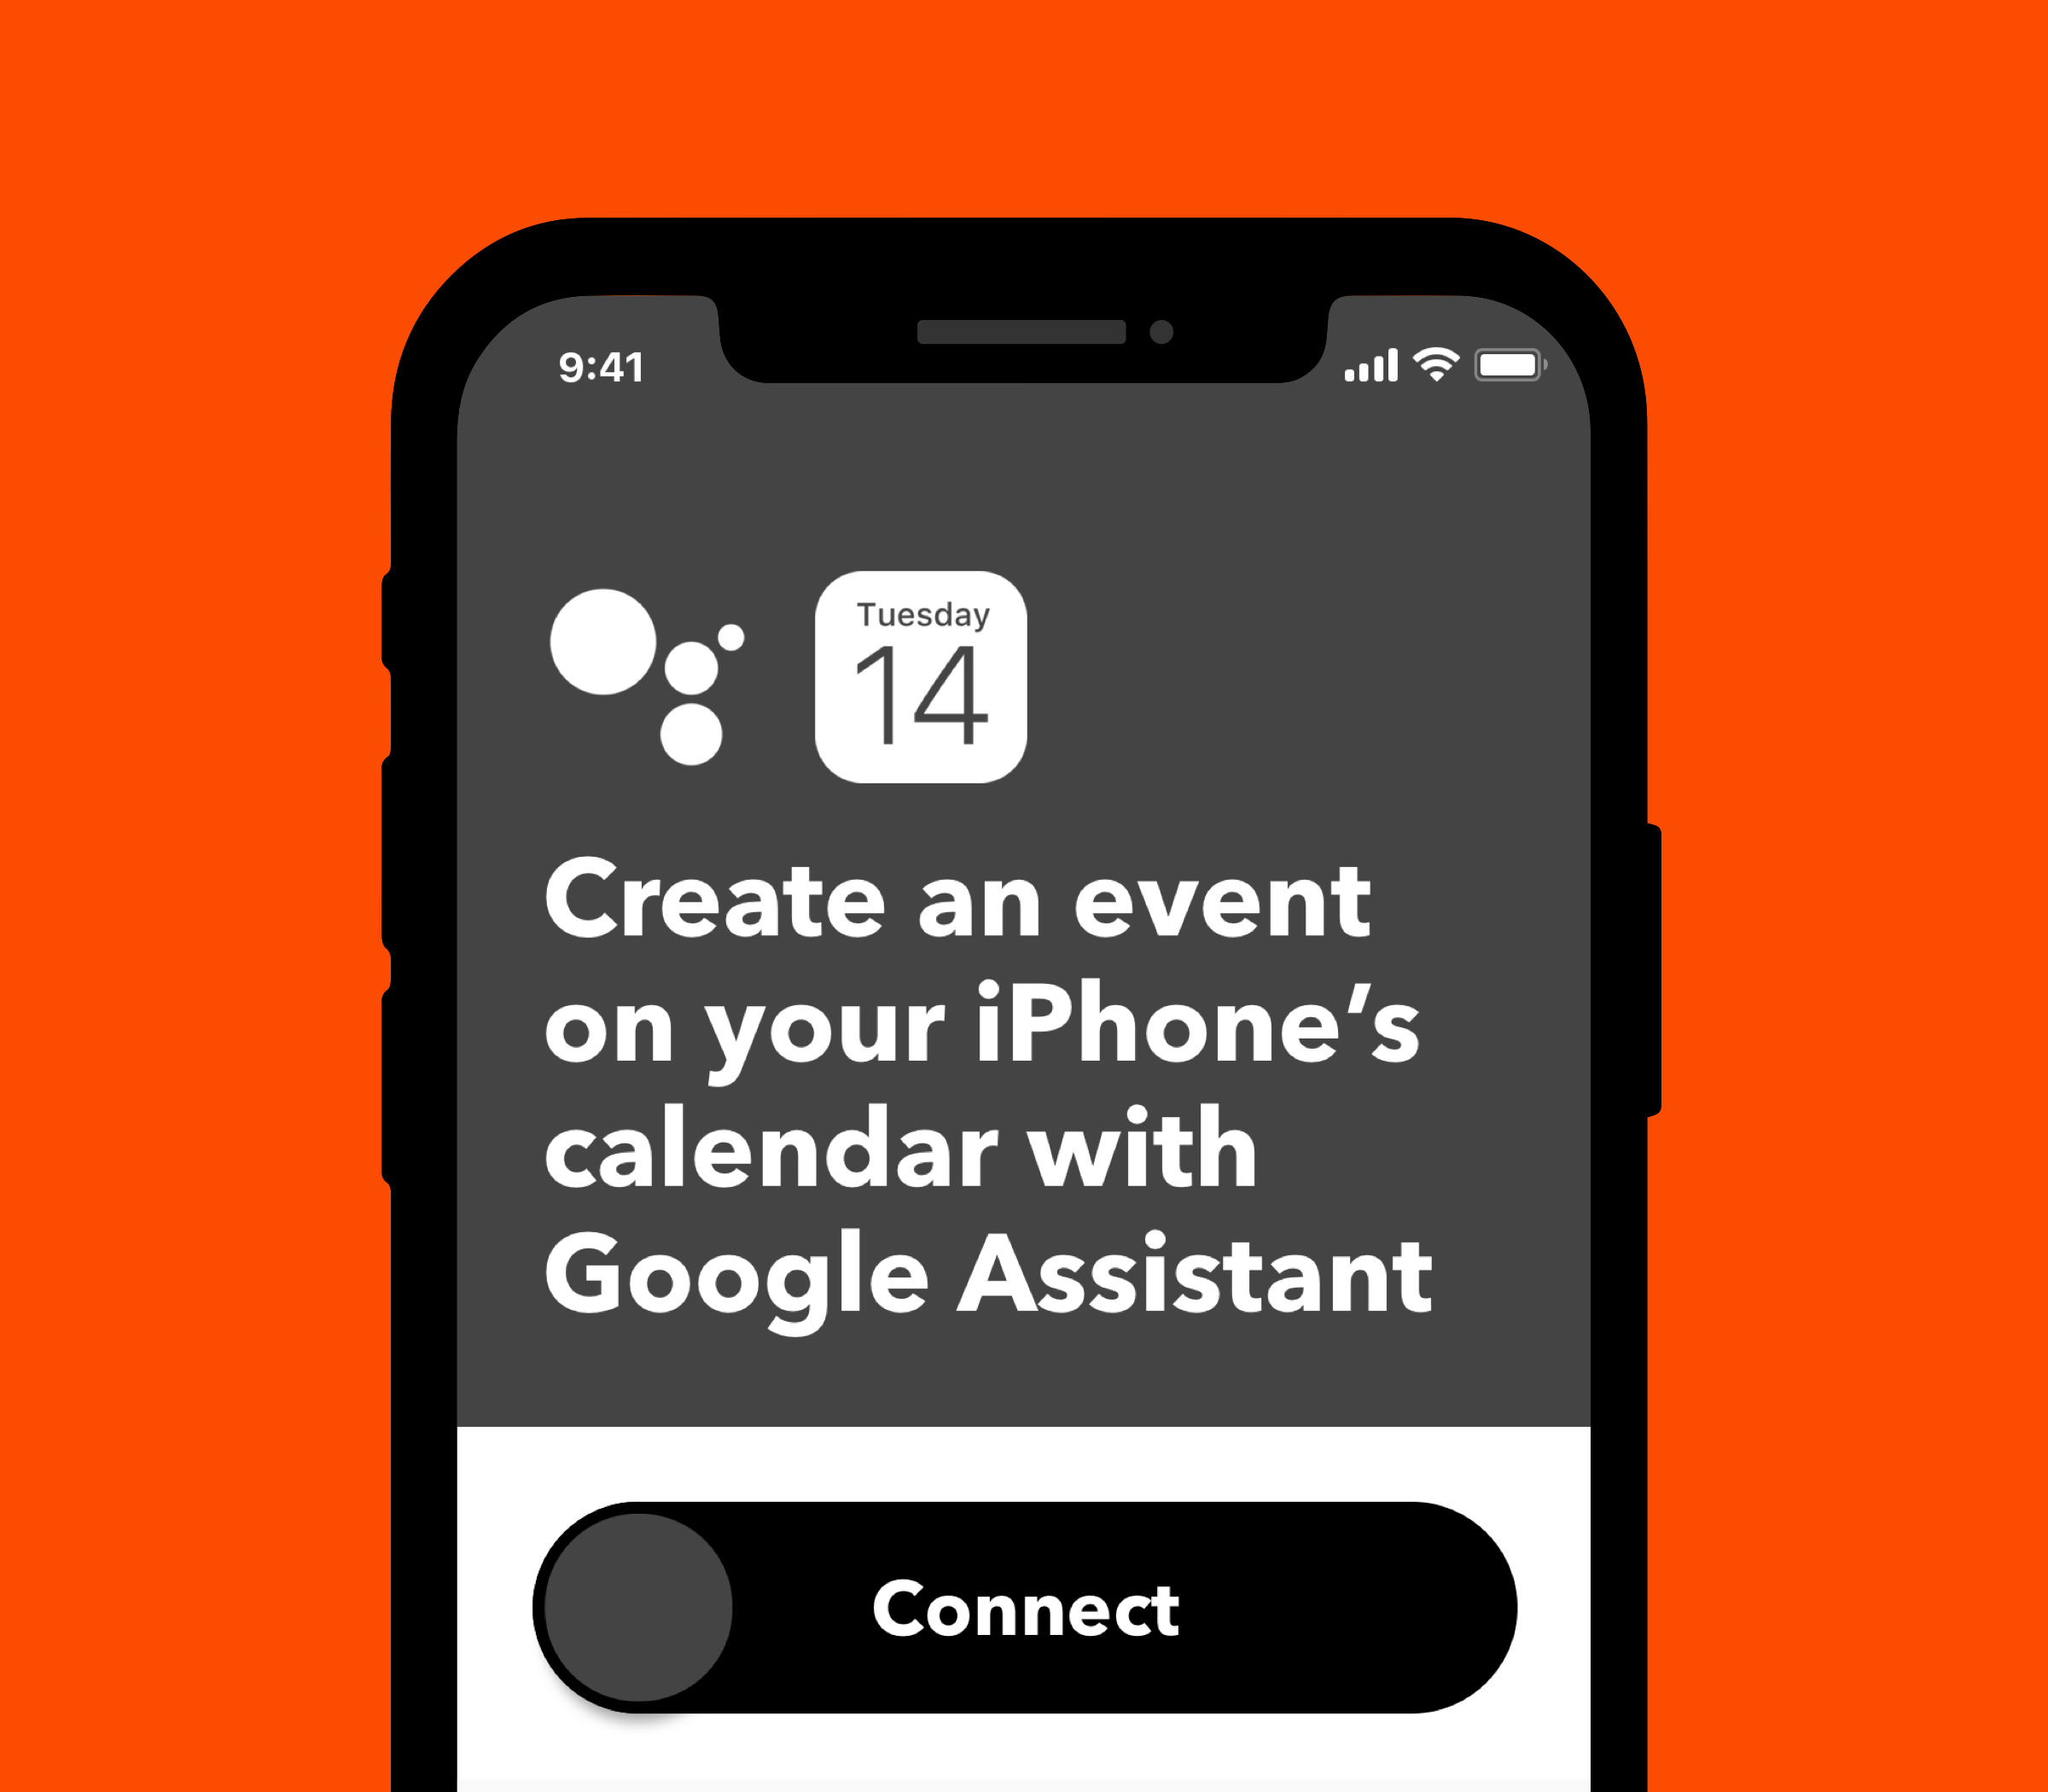 Connect Google Assistant to your iPhone